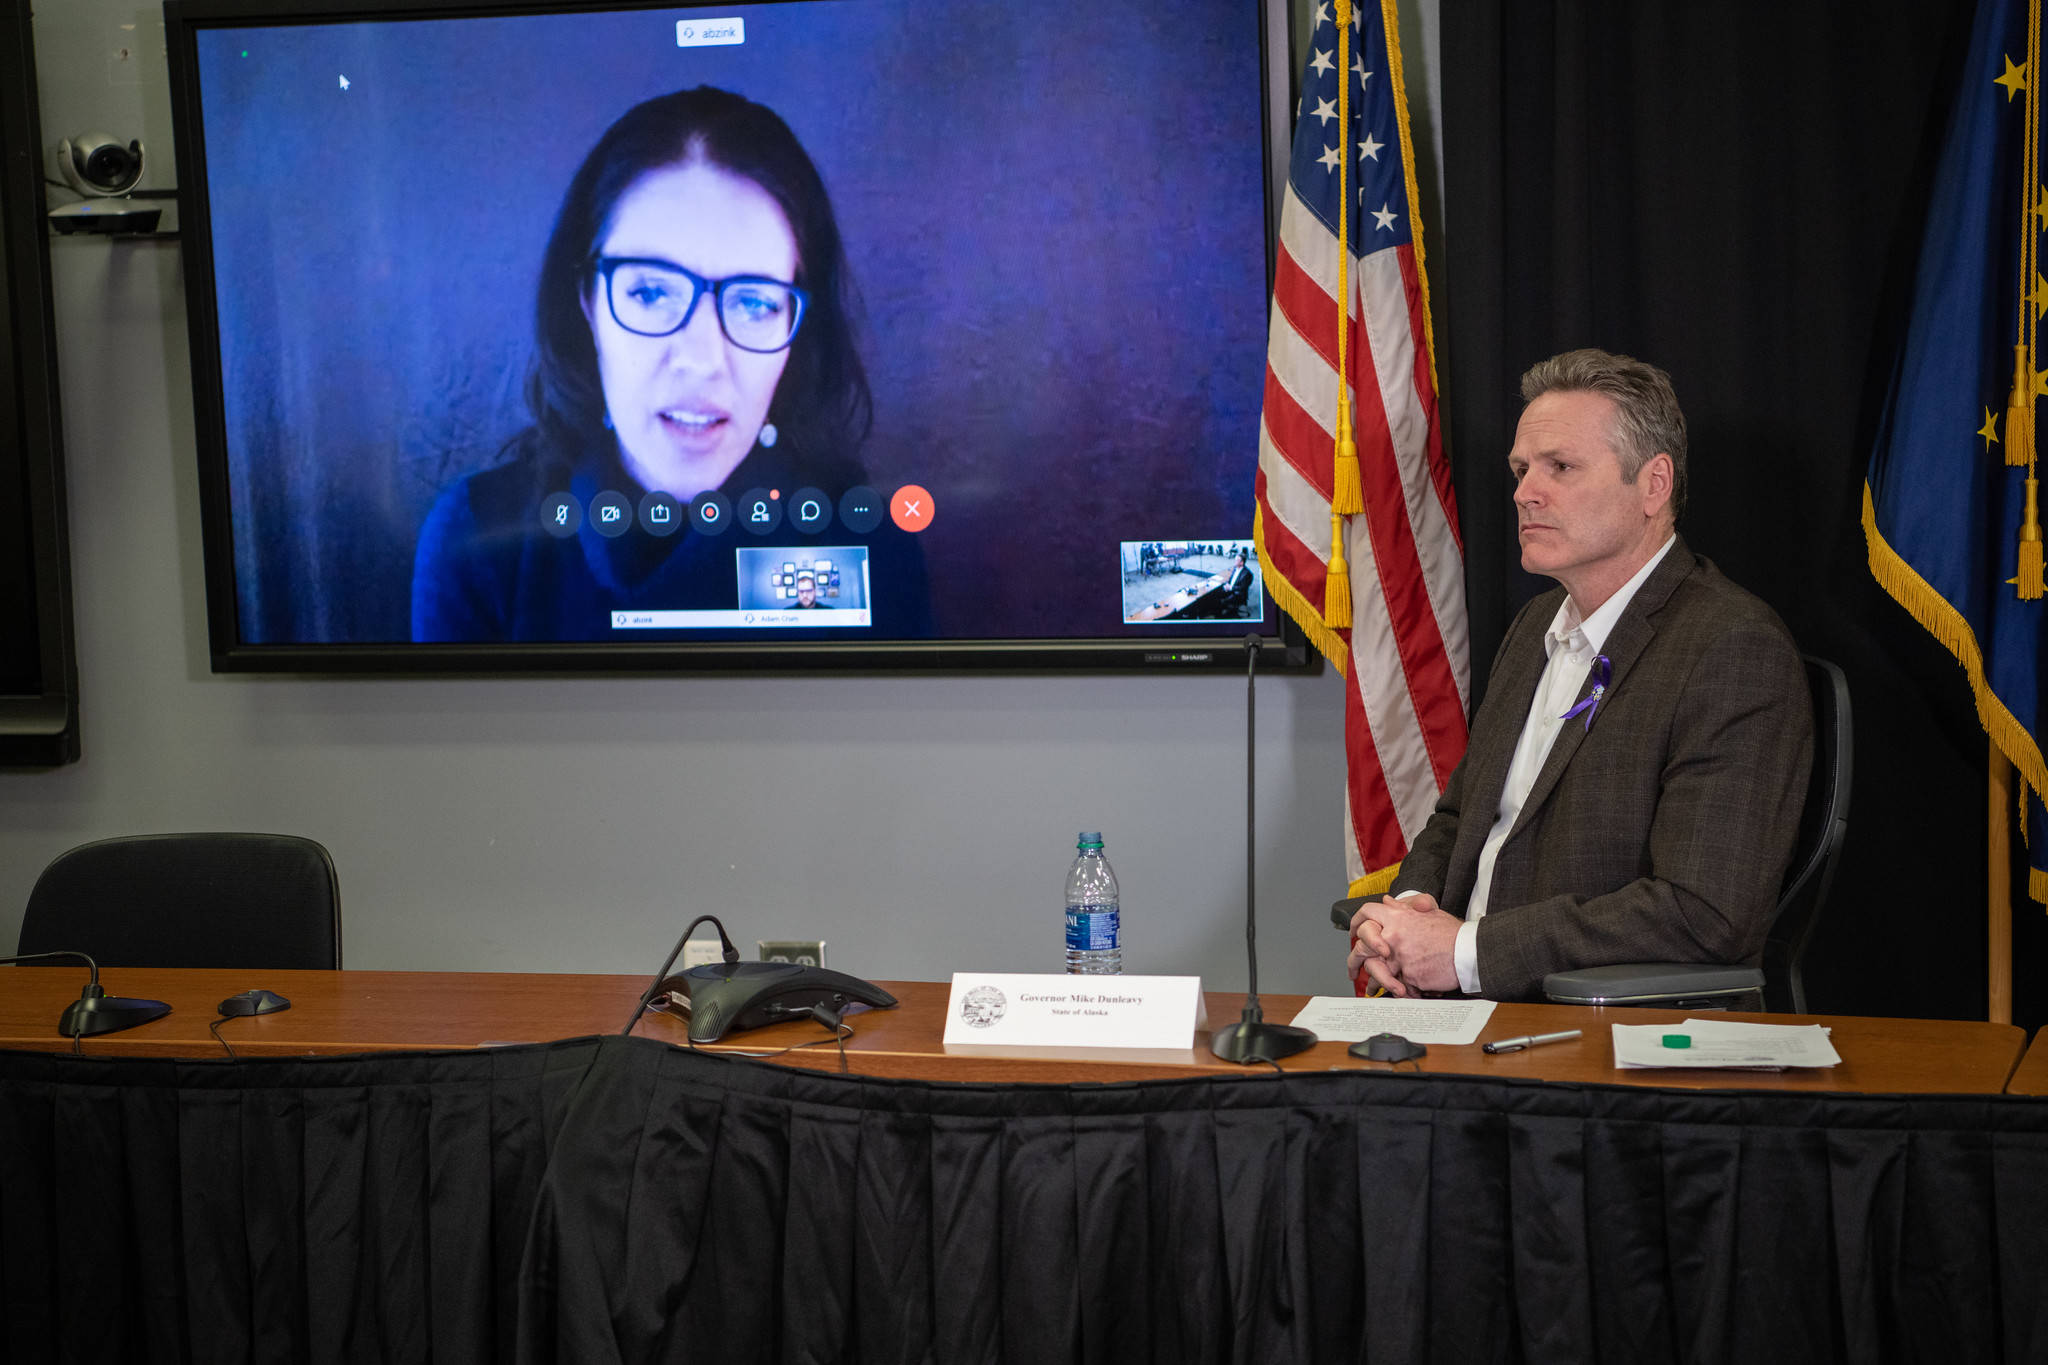 Gov. Mike Dunleavy at a press conference with Chief Medical Officer Dr. Anne Zink on Friday, March 27, 2020. (Courtesy photo | Office of Gov. Mike Dunleavy)